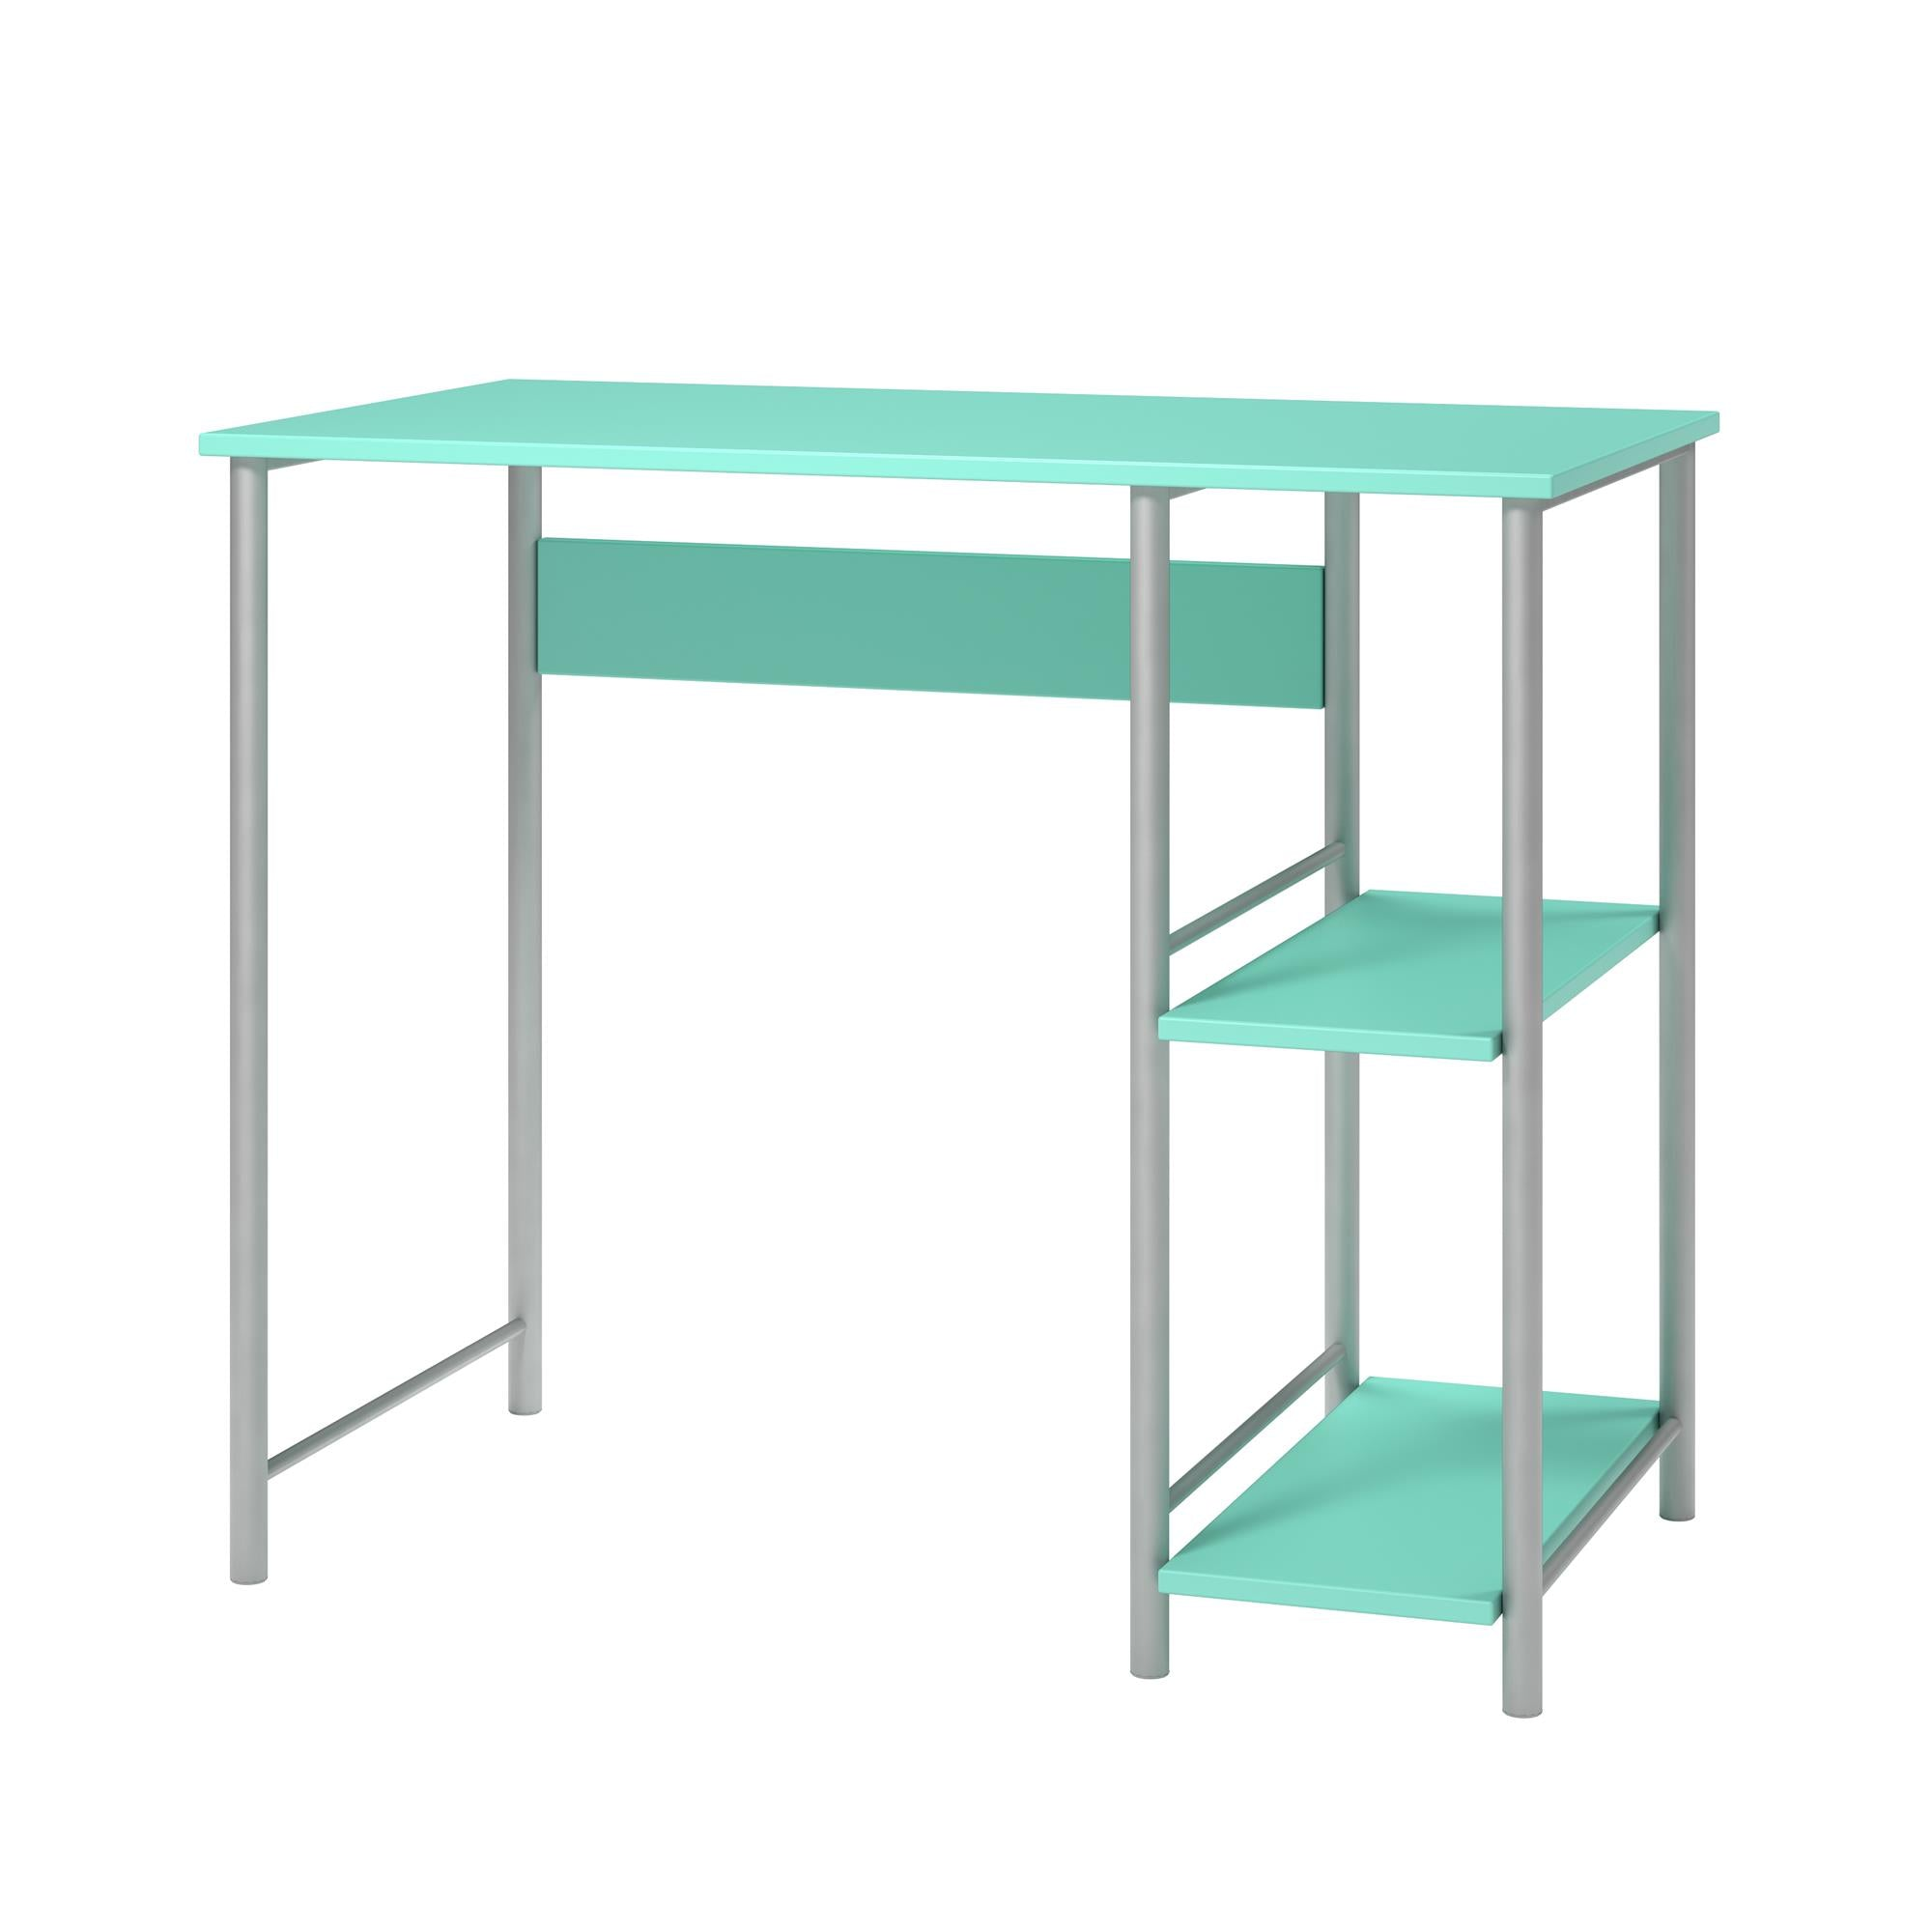 Basic Student Desk 2 side shelves